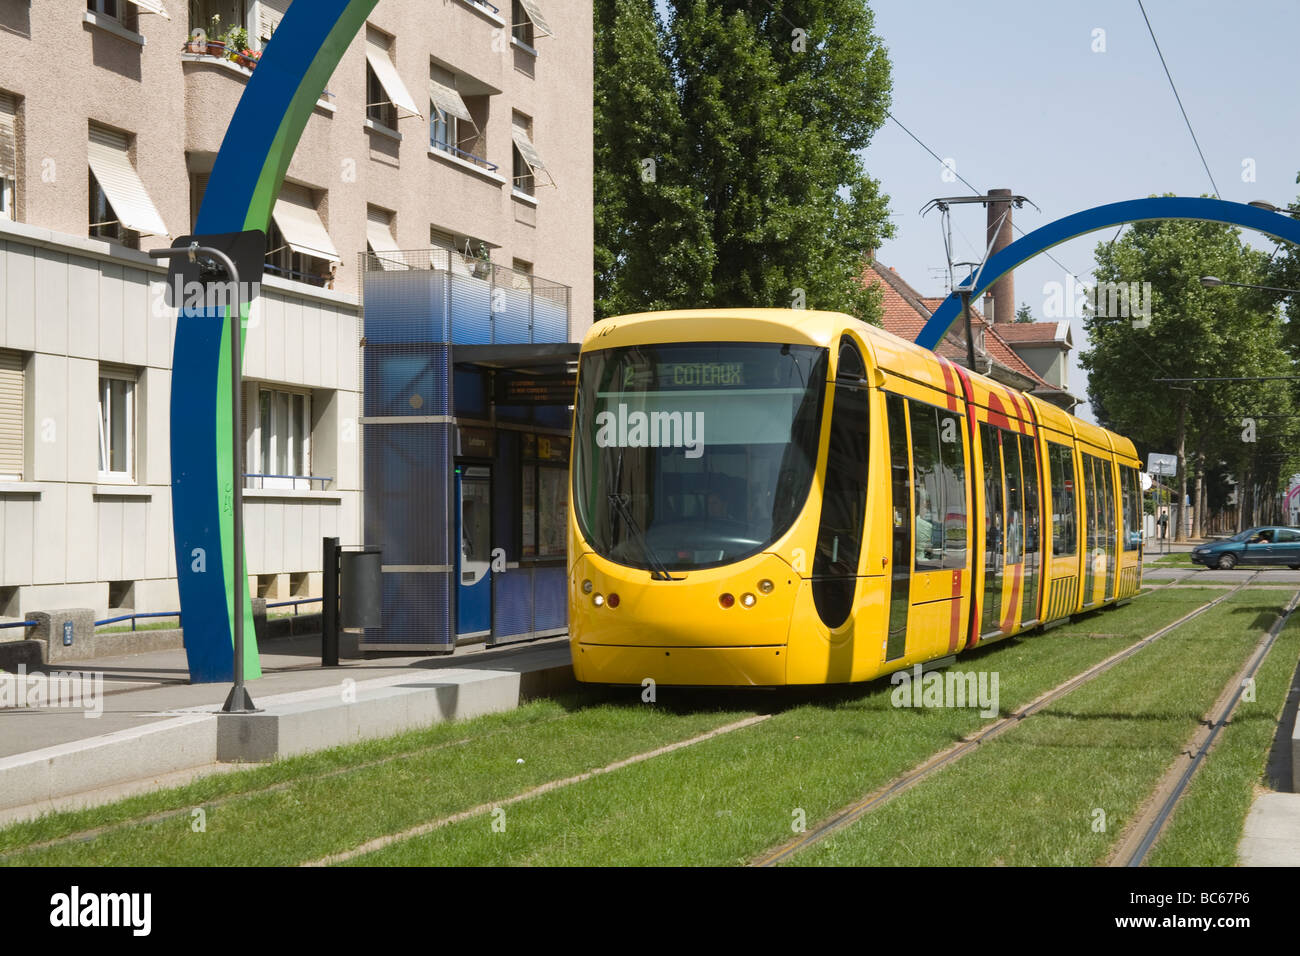 mulhouse alsace france eu city tram parked in lefebvre station stock photo royalty free image. Black Bedroom Furniture Sets. Home Design Ideas